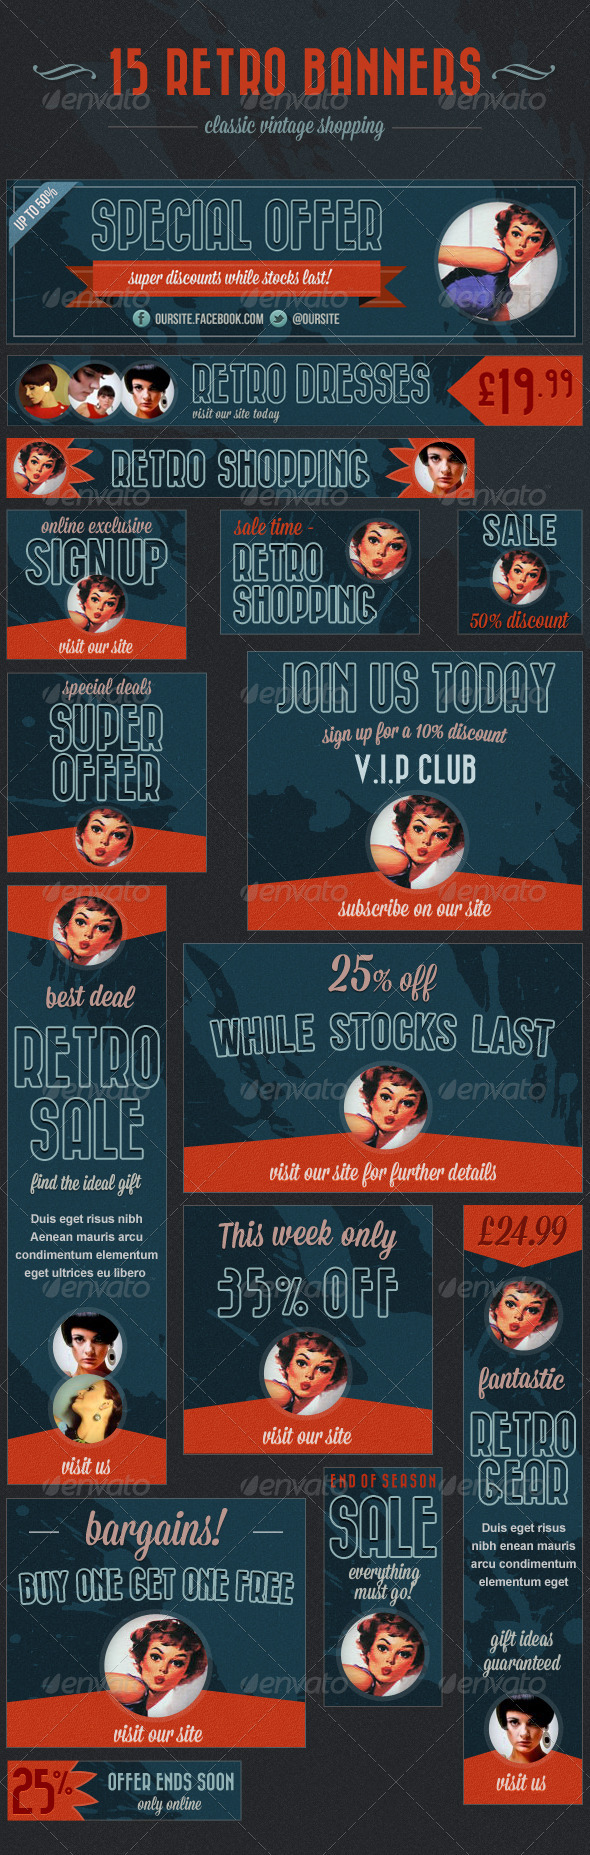 GraphicRiver 15 Retro Banners Vintage Shopping Ads 3905168